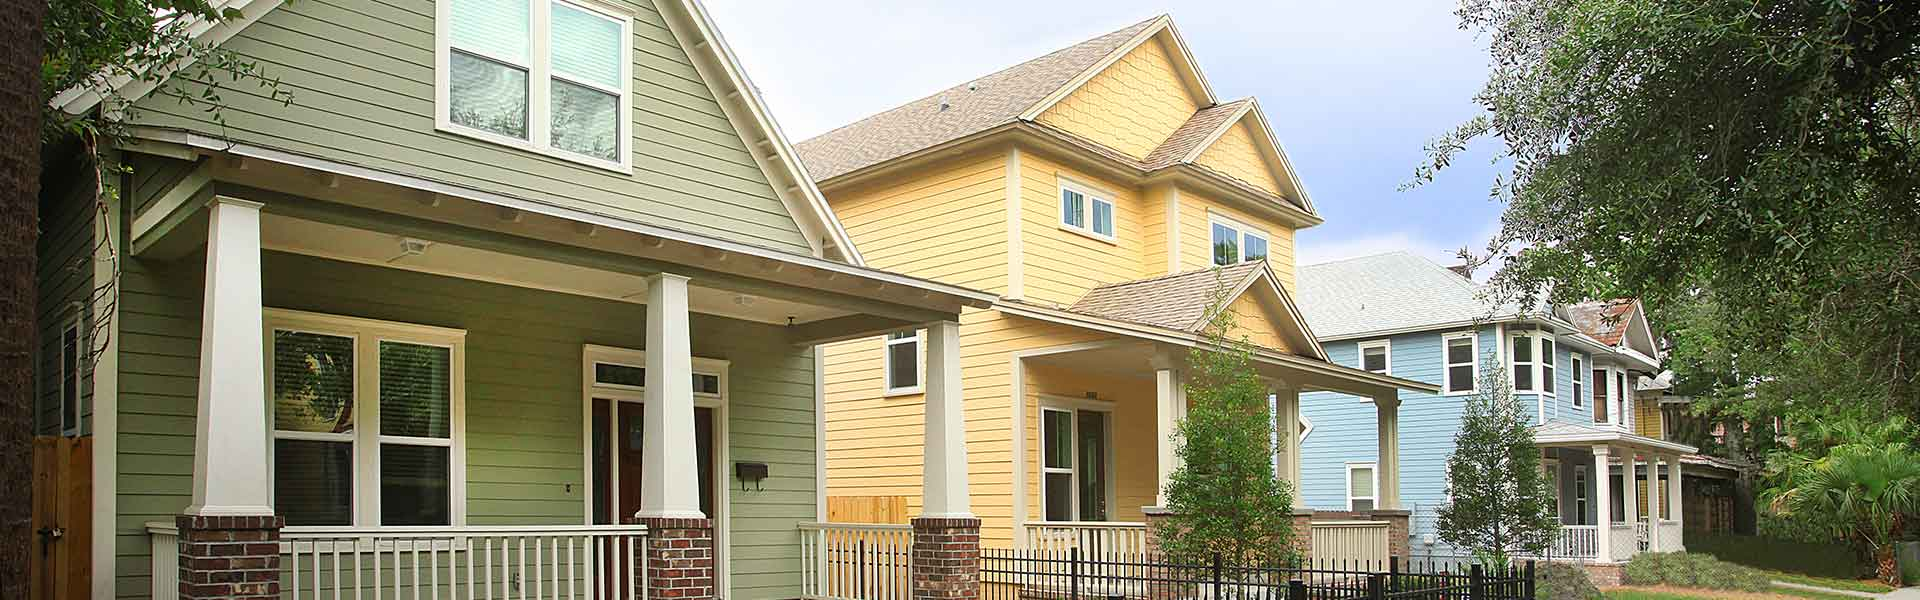 TerraWise Homes has transformed Historic Springfield in Jacksonville.